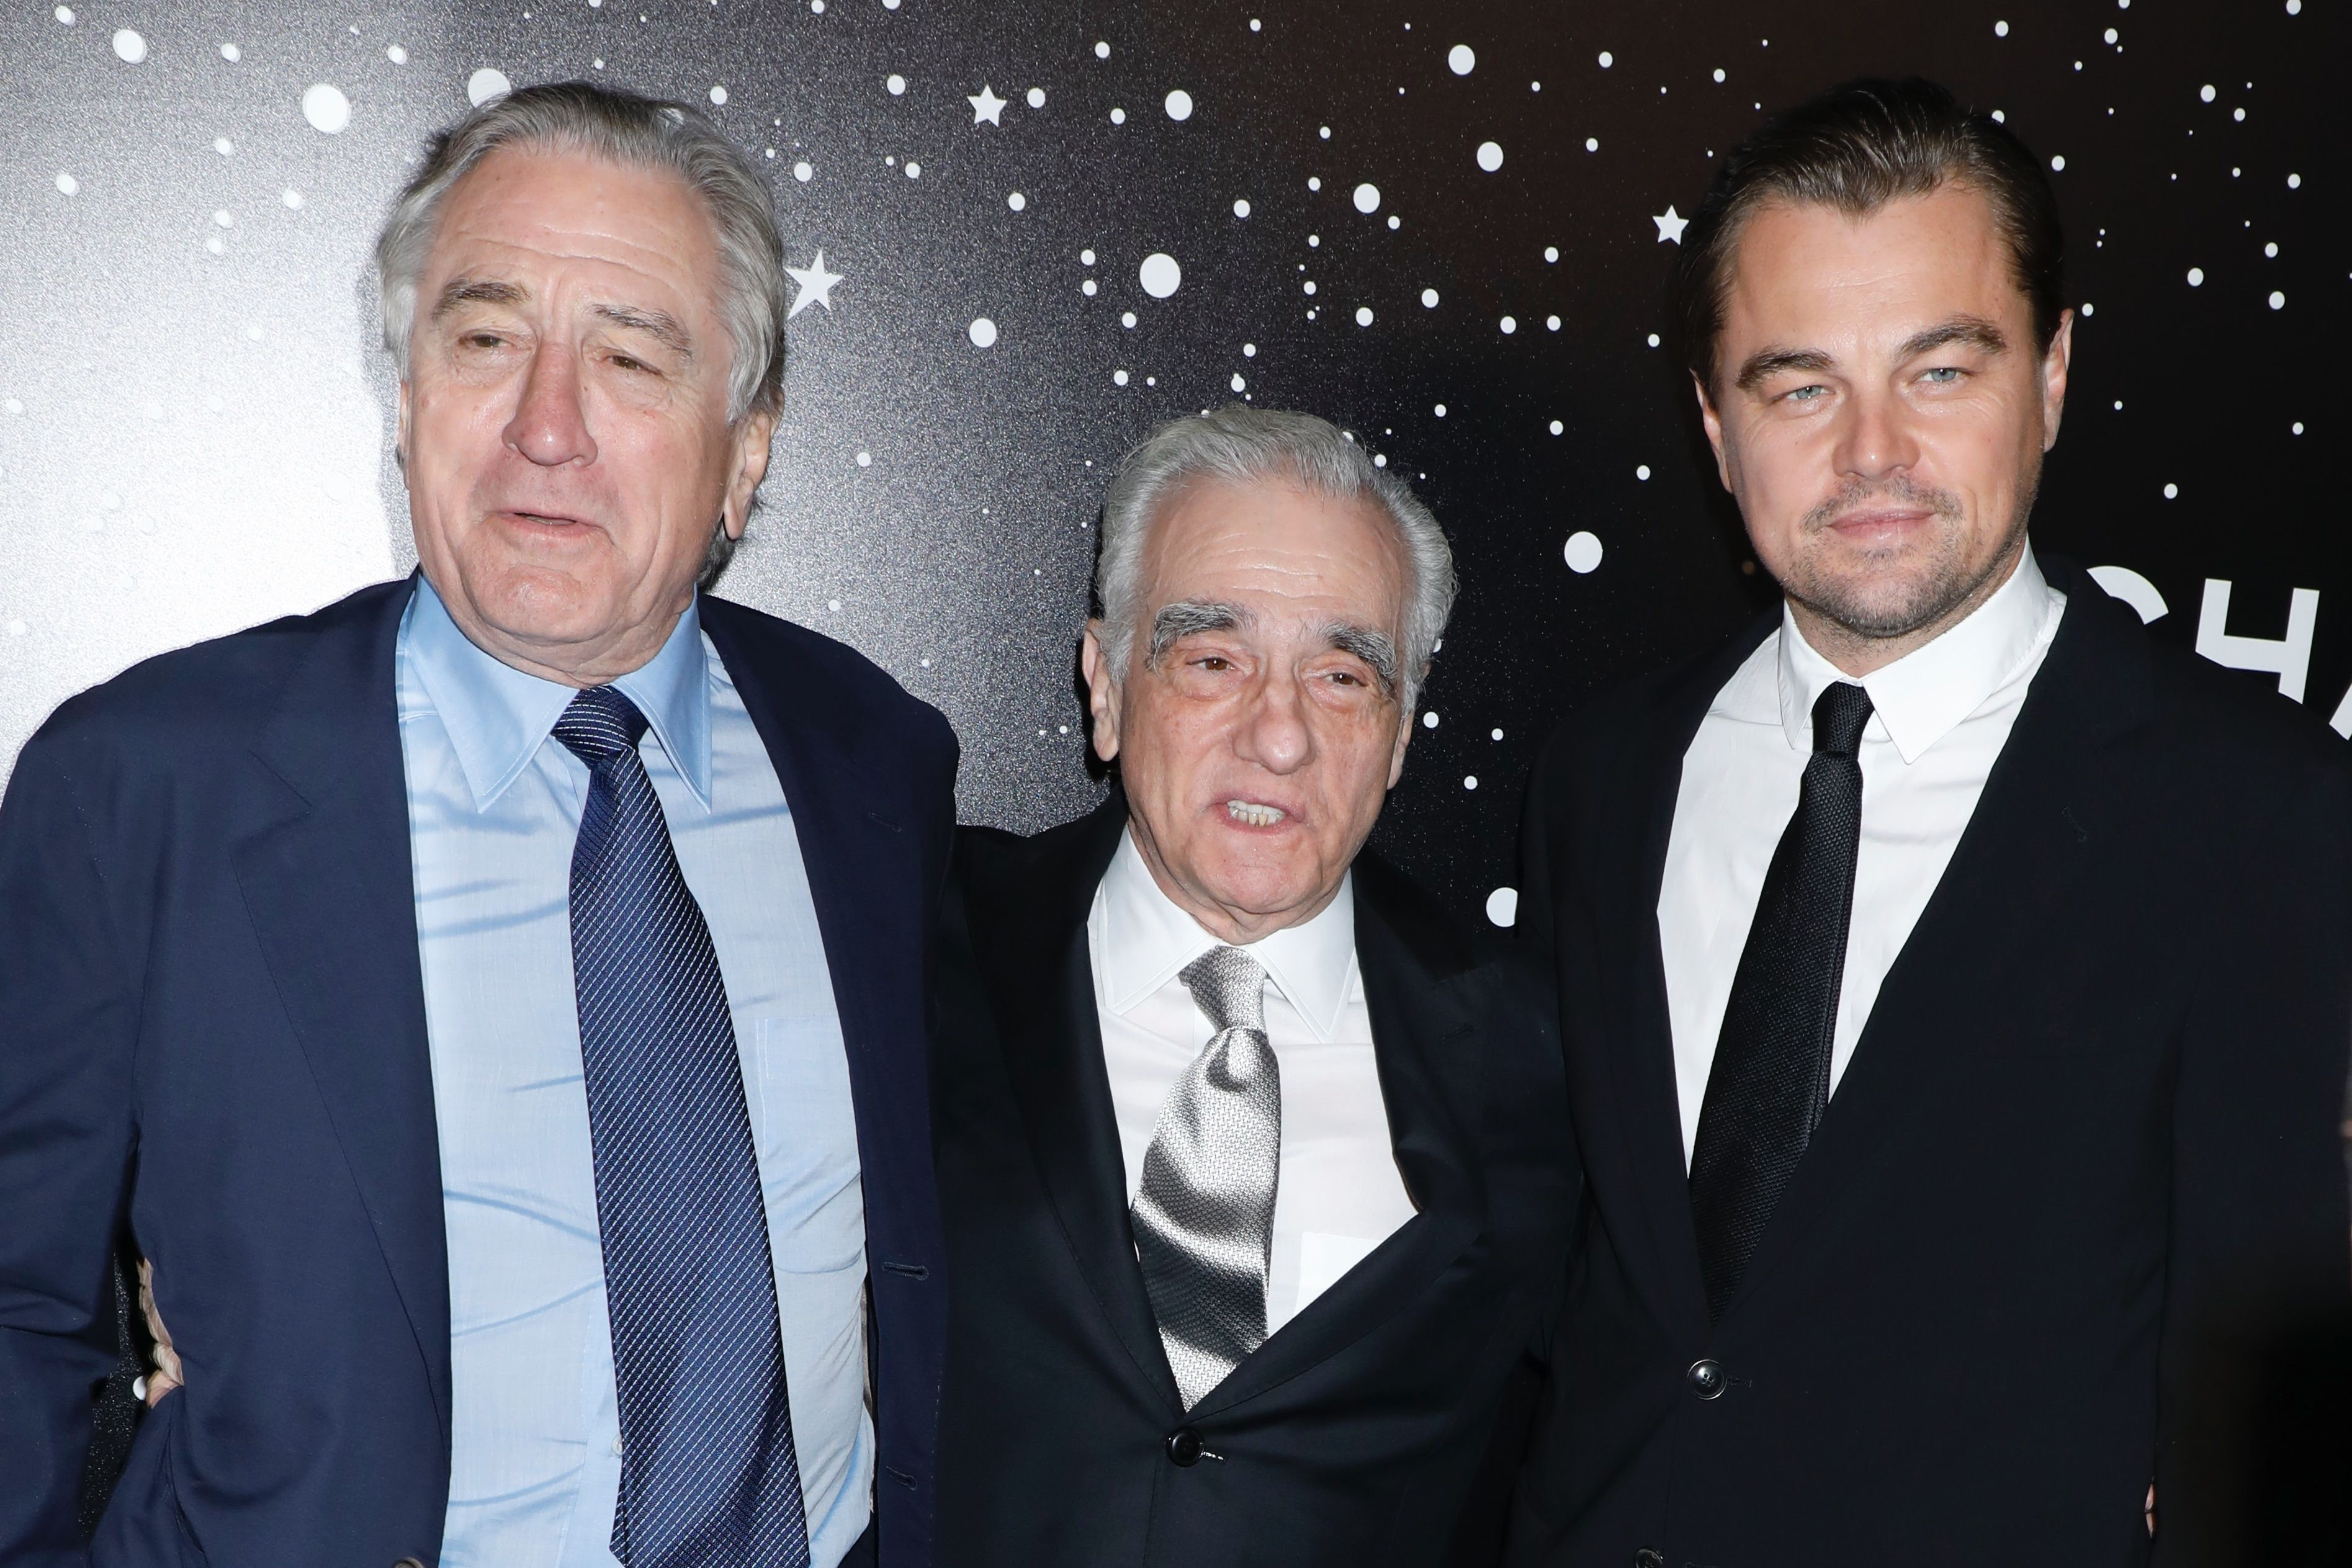 Martin Scorsese Teases DiCaprio-De Niro Crime Film 'Flower Moon' as His First Western